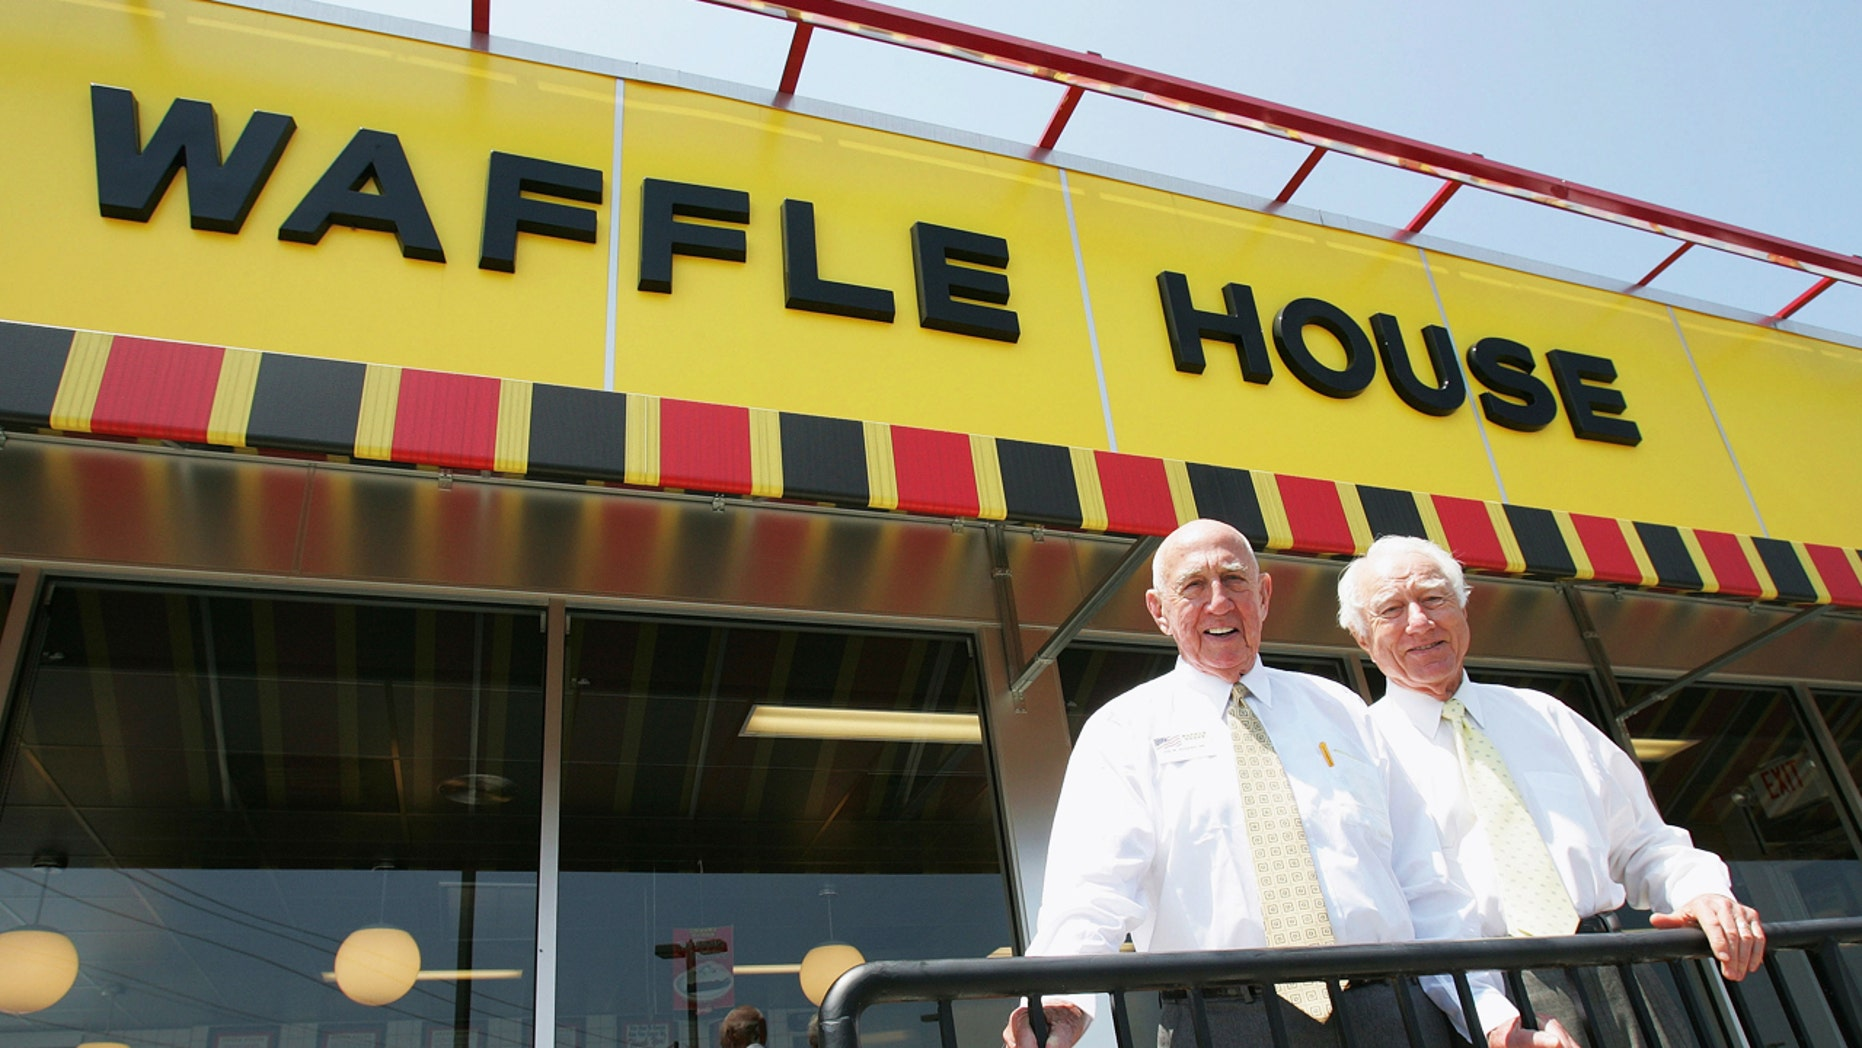 FILE - In this file photo taken July 26, 2005, Waffle House founders Joe Rogers Sr., left, and Thomas Francis Forkner Sr. pose in front of a Waffle House restaurant after eating lunch at the establishment in Norcross, Ga. Forkner, who jumped from real estate to the restaurant business when he co-founded Waffle House in the 1950s, has died weeks after the death of his business partner who helped him create the famous Southern diner chain. Waffle House said in a statement that Forkner died Wednesday, April 26, 2017, at age 98. (AP Photo/Ric Feld, File)